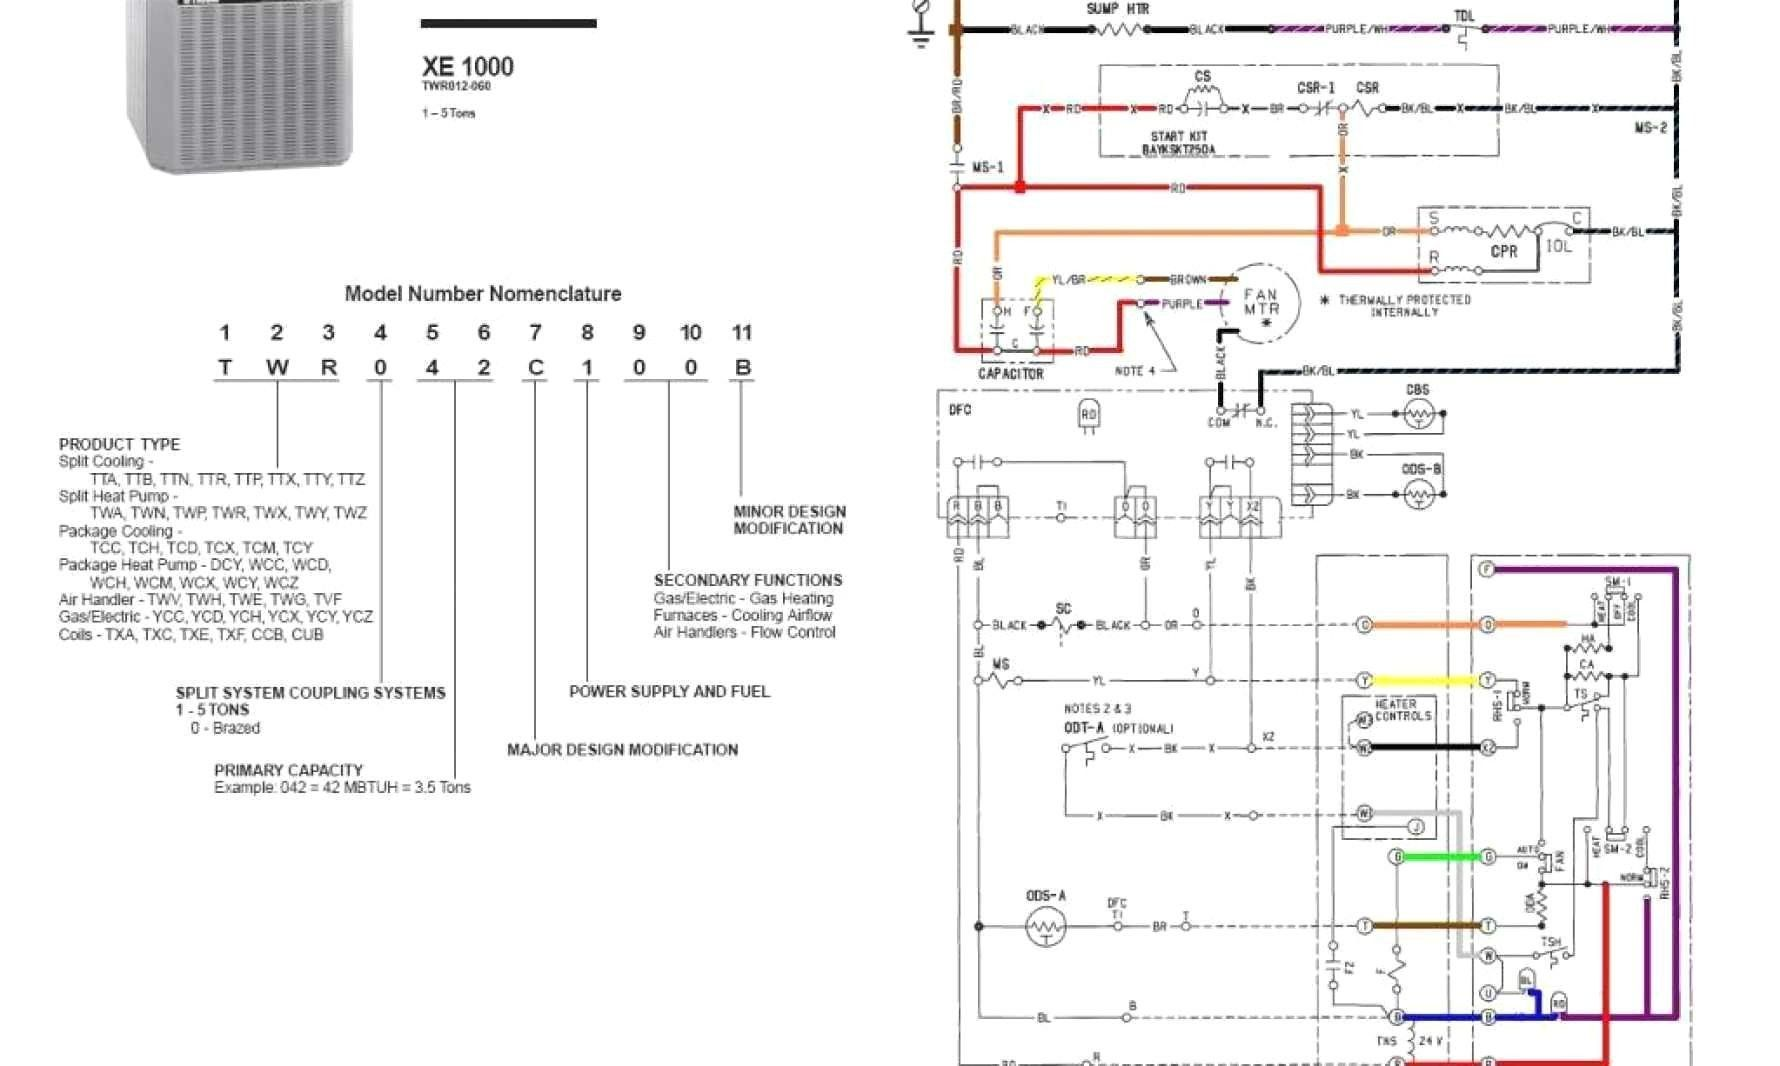 Trane Wiring Schematics | Wiring Diagram on